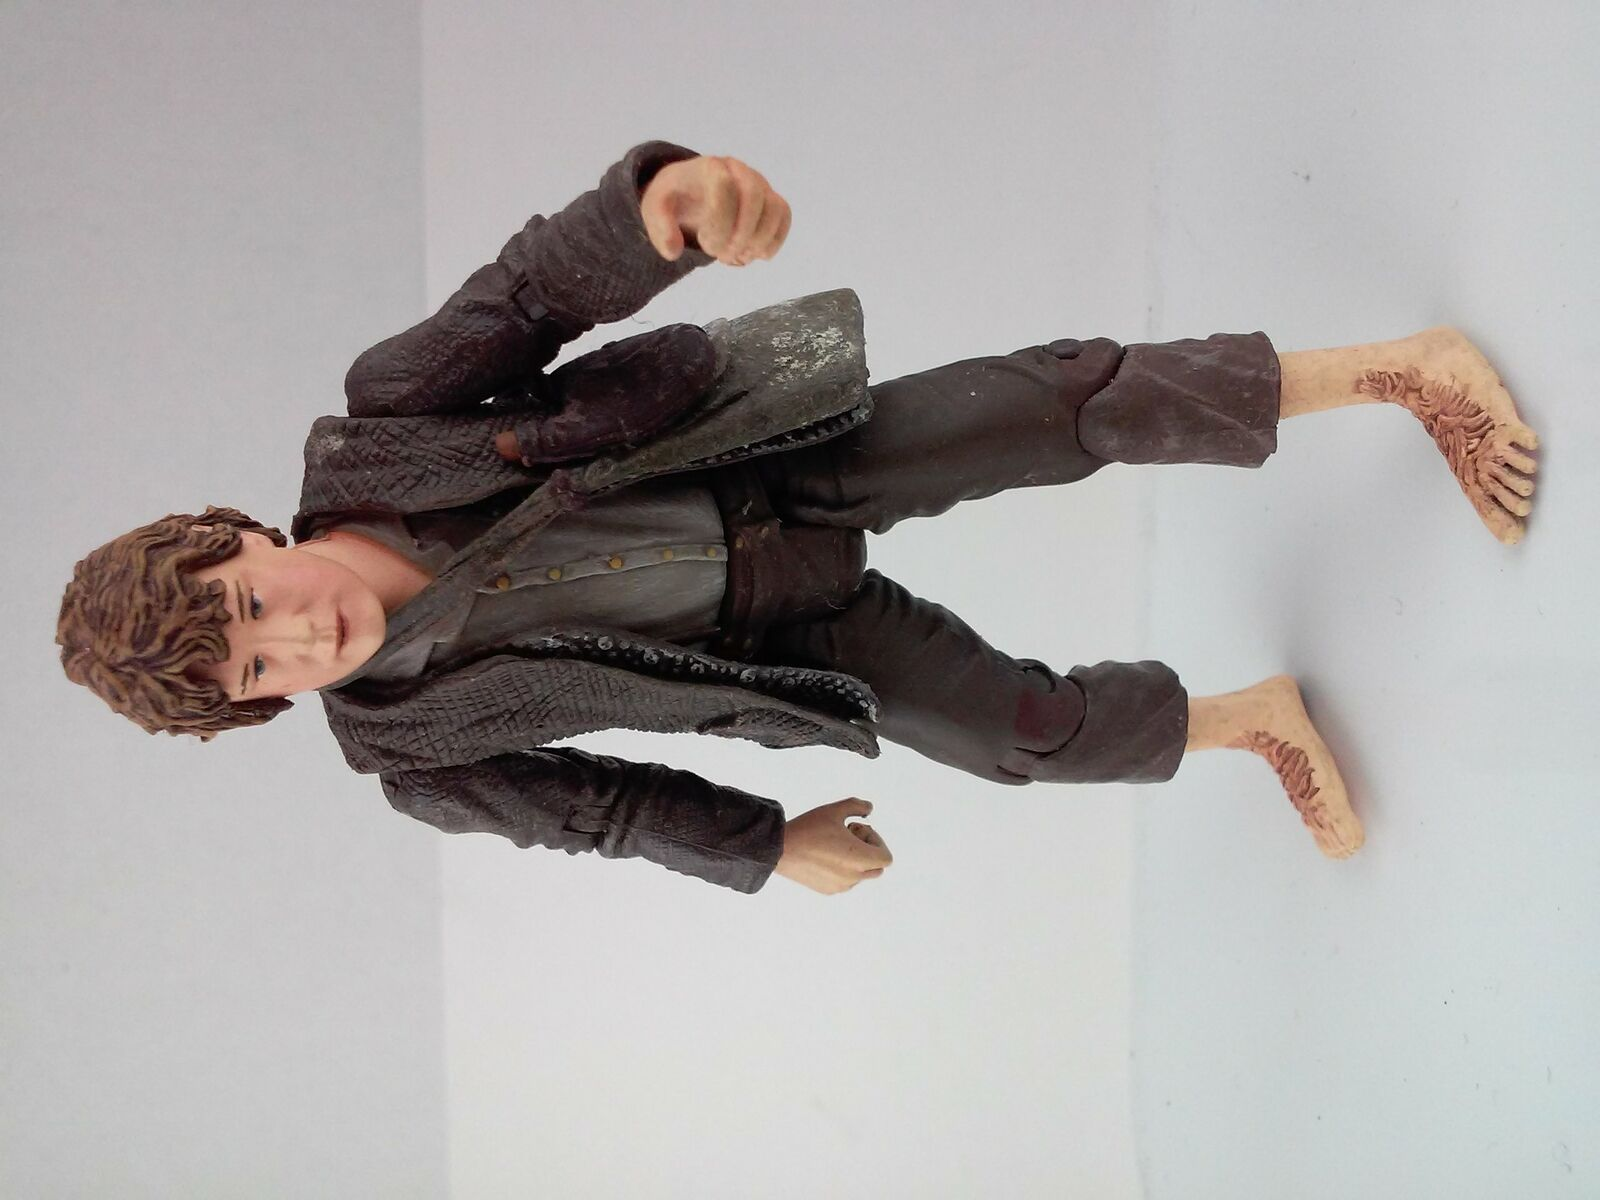 2002 NLP Marvel Lord of the Rings Hobbit Action Figure